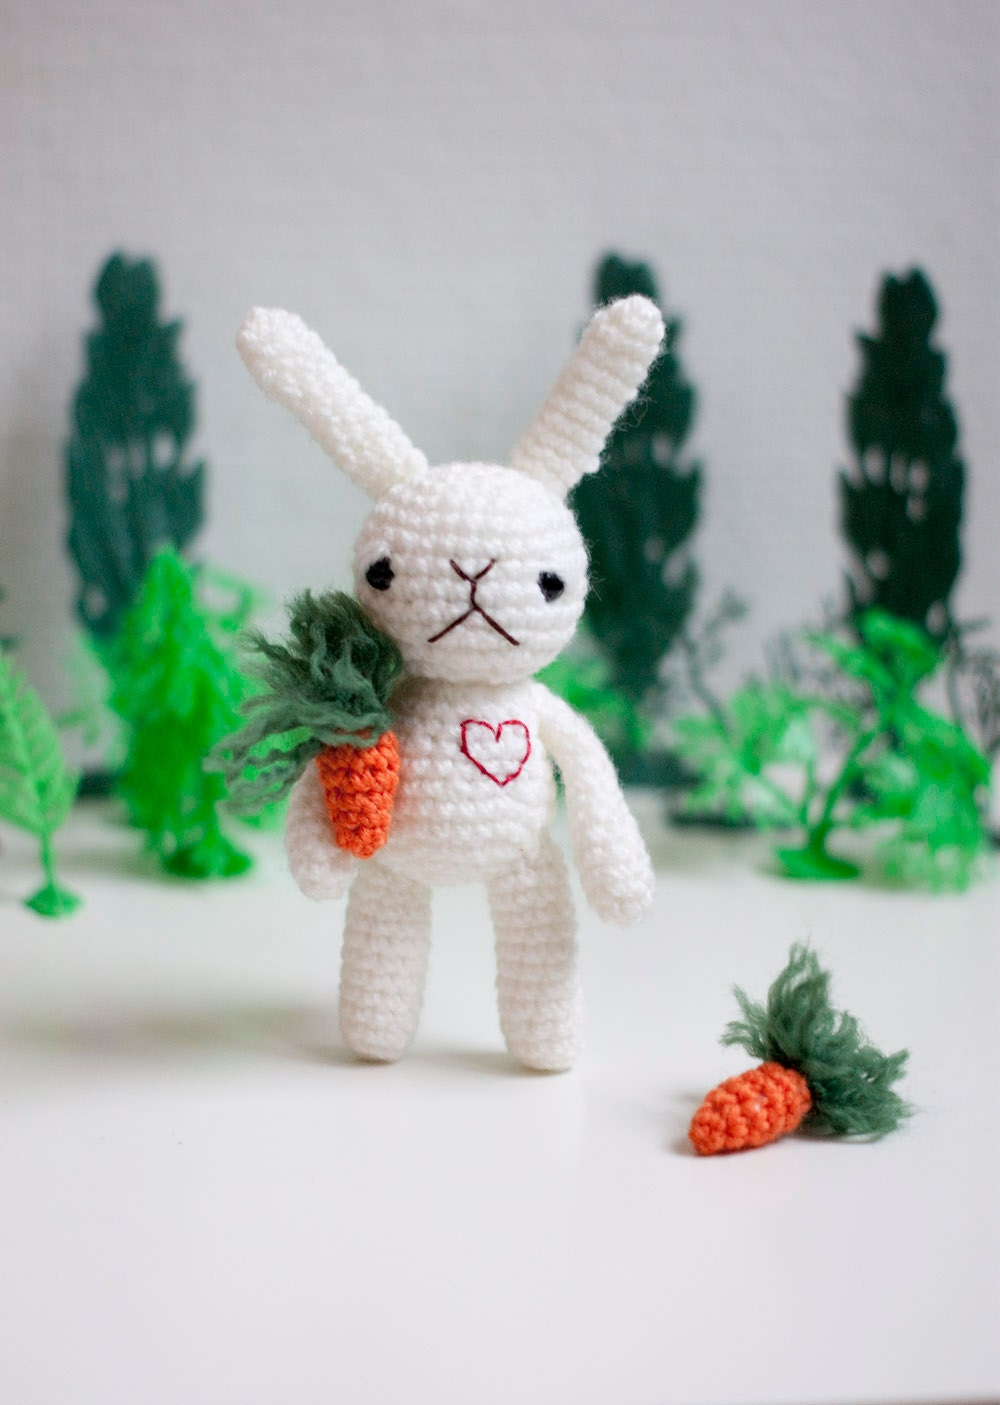 Amigurumi, soft toy, soft sculpture bunny - Bianca the white carrot farmer bunny